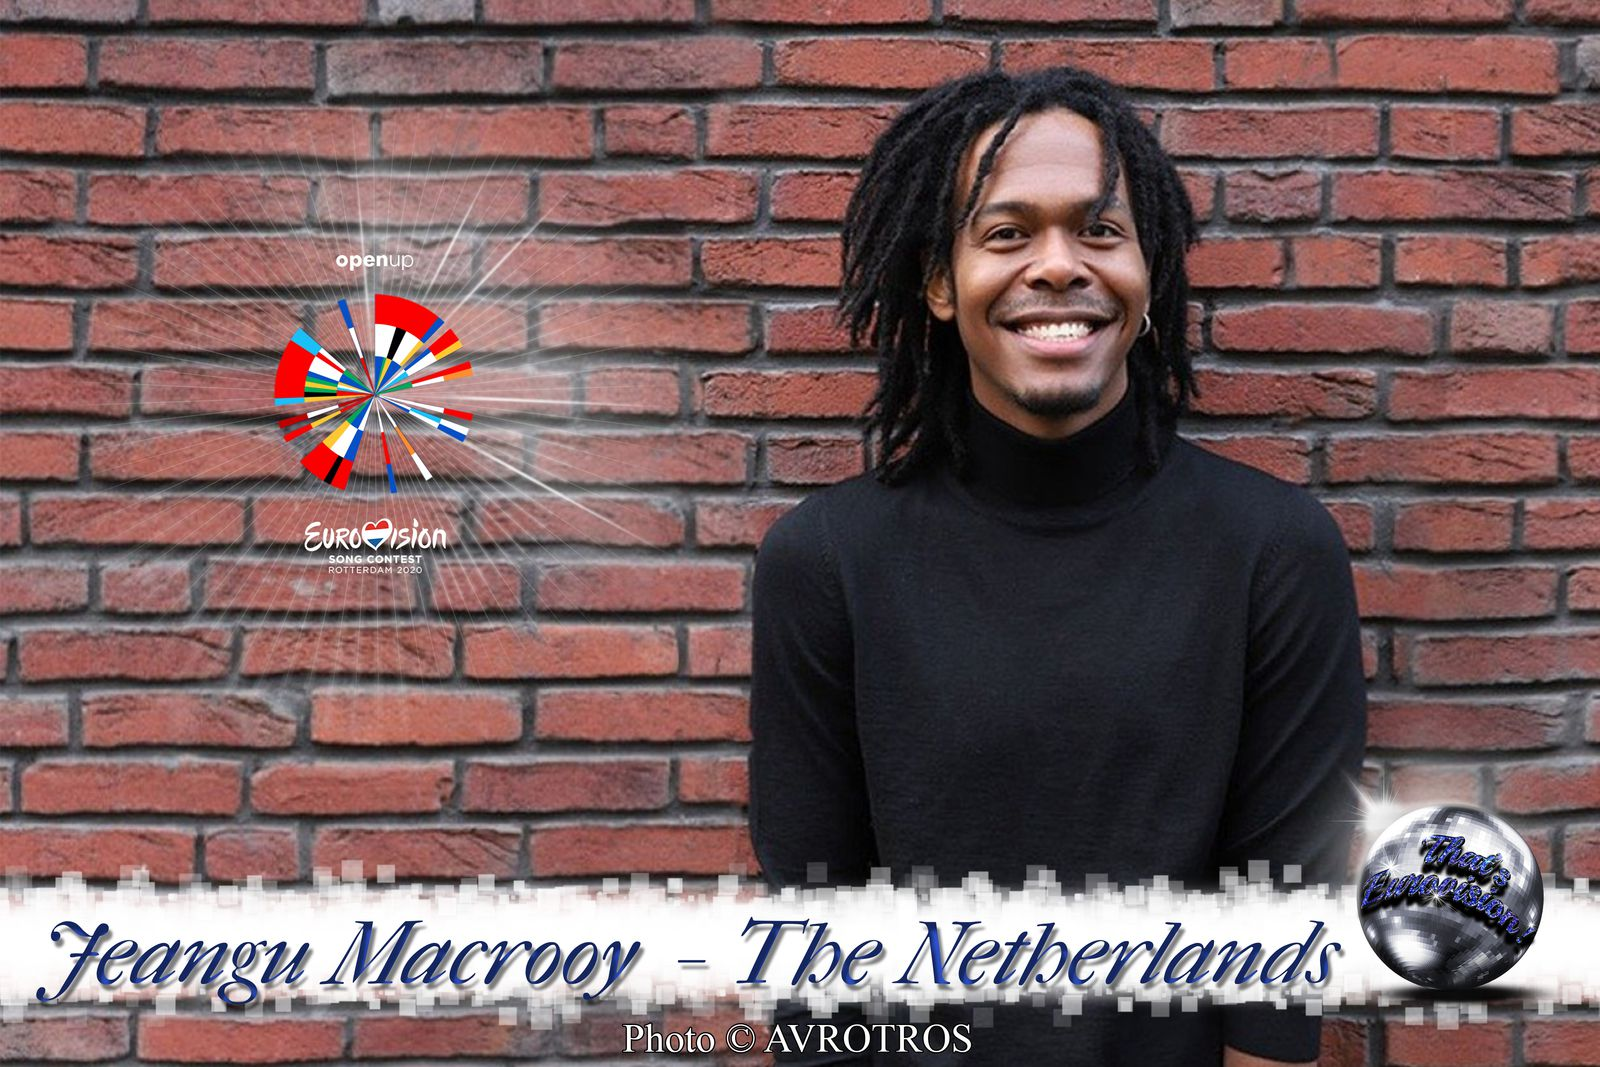 The Netherlands 2020 - Jeangu Macrooy